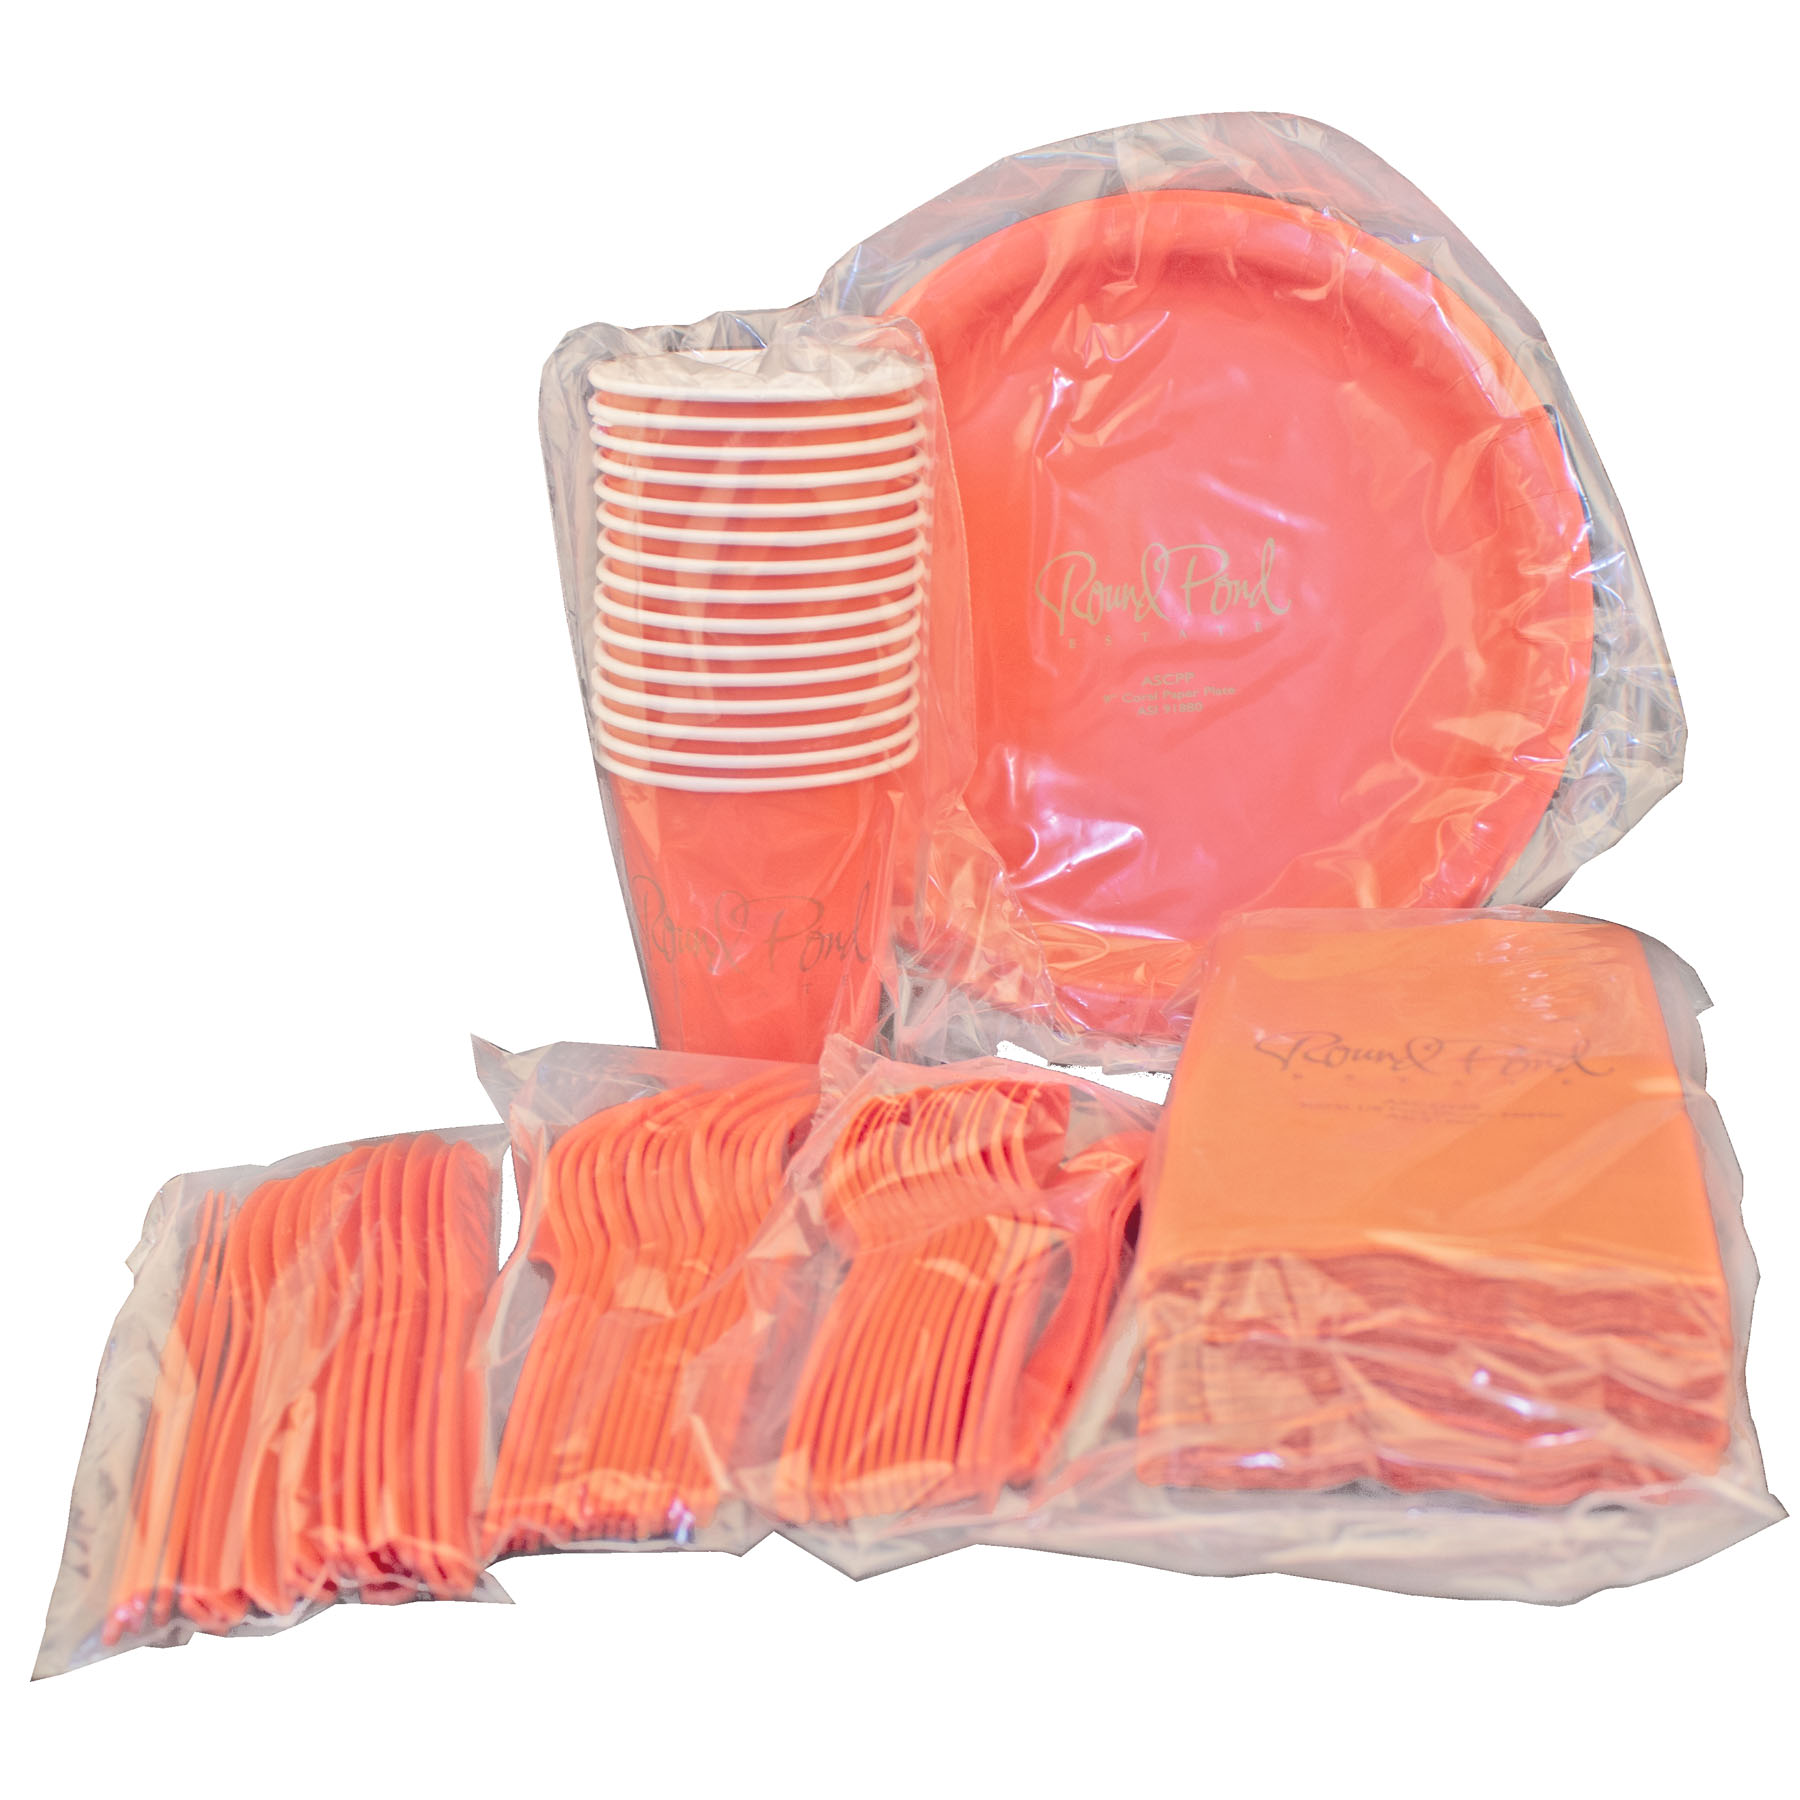 Paper Set Packaged in Disposable Bag - Tailgater Set - The 500 Line